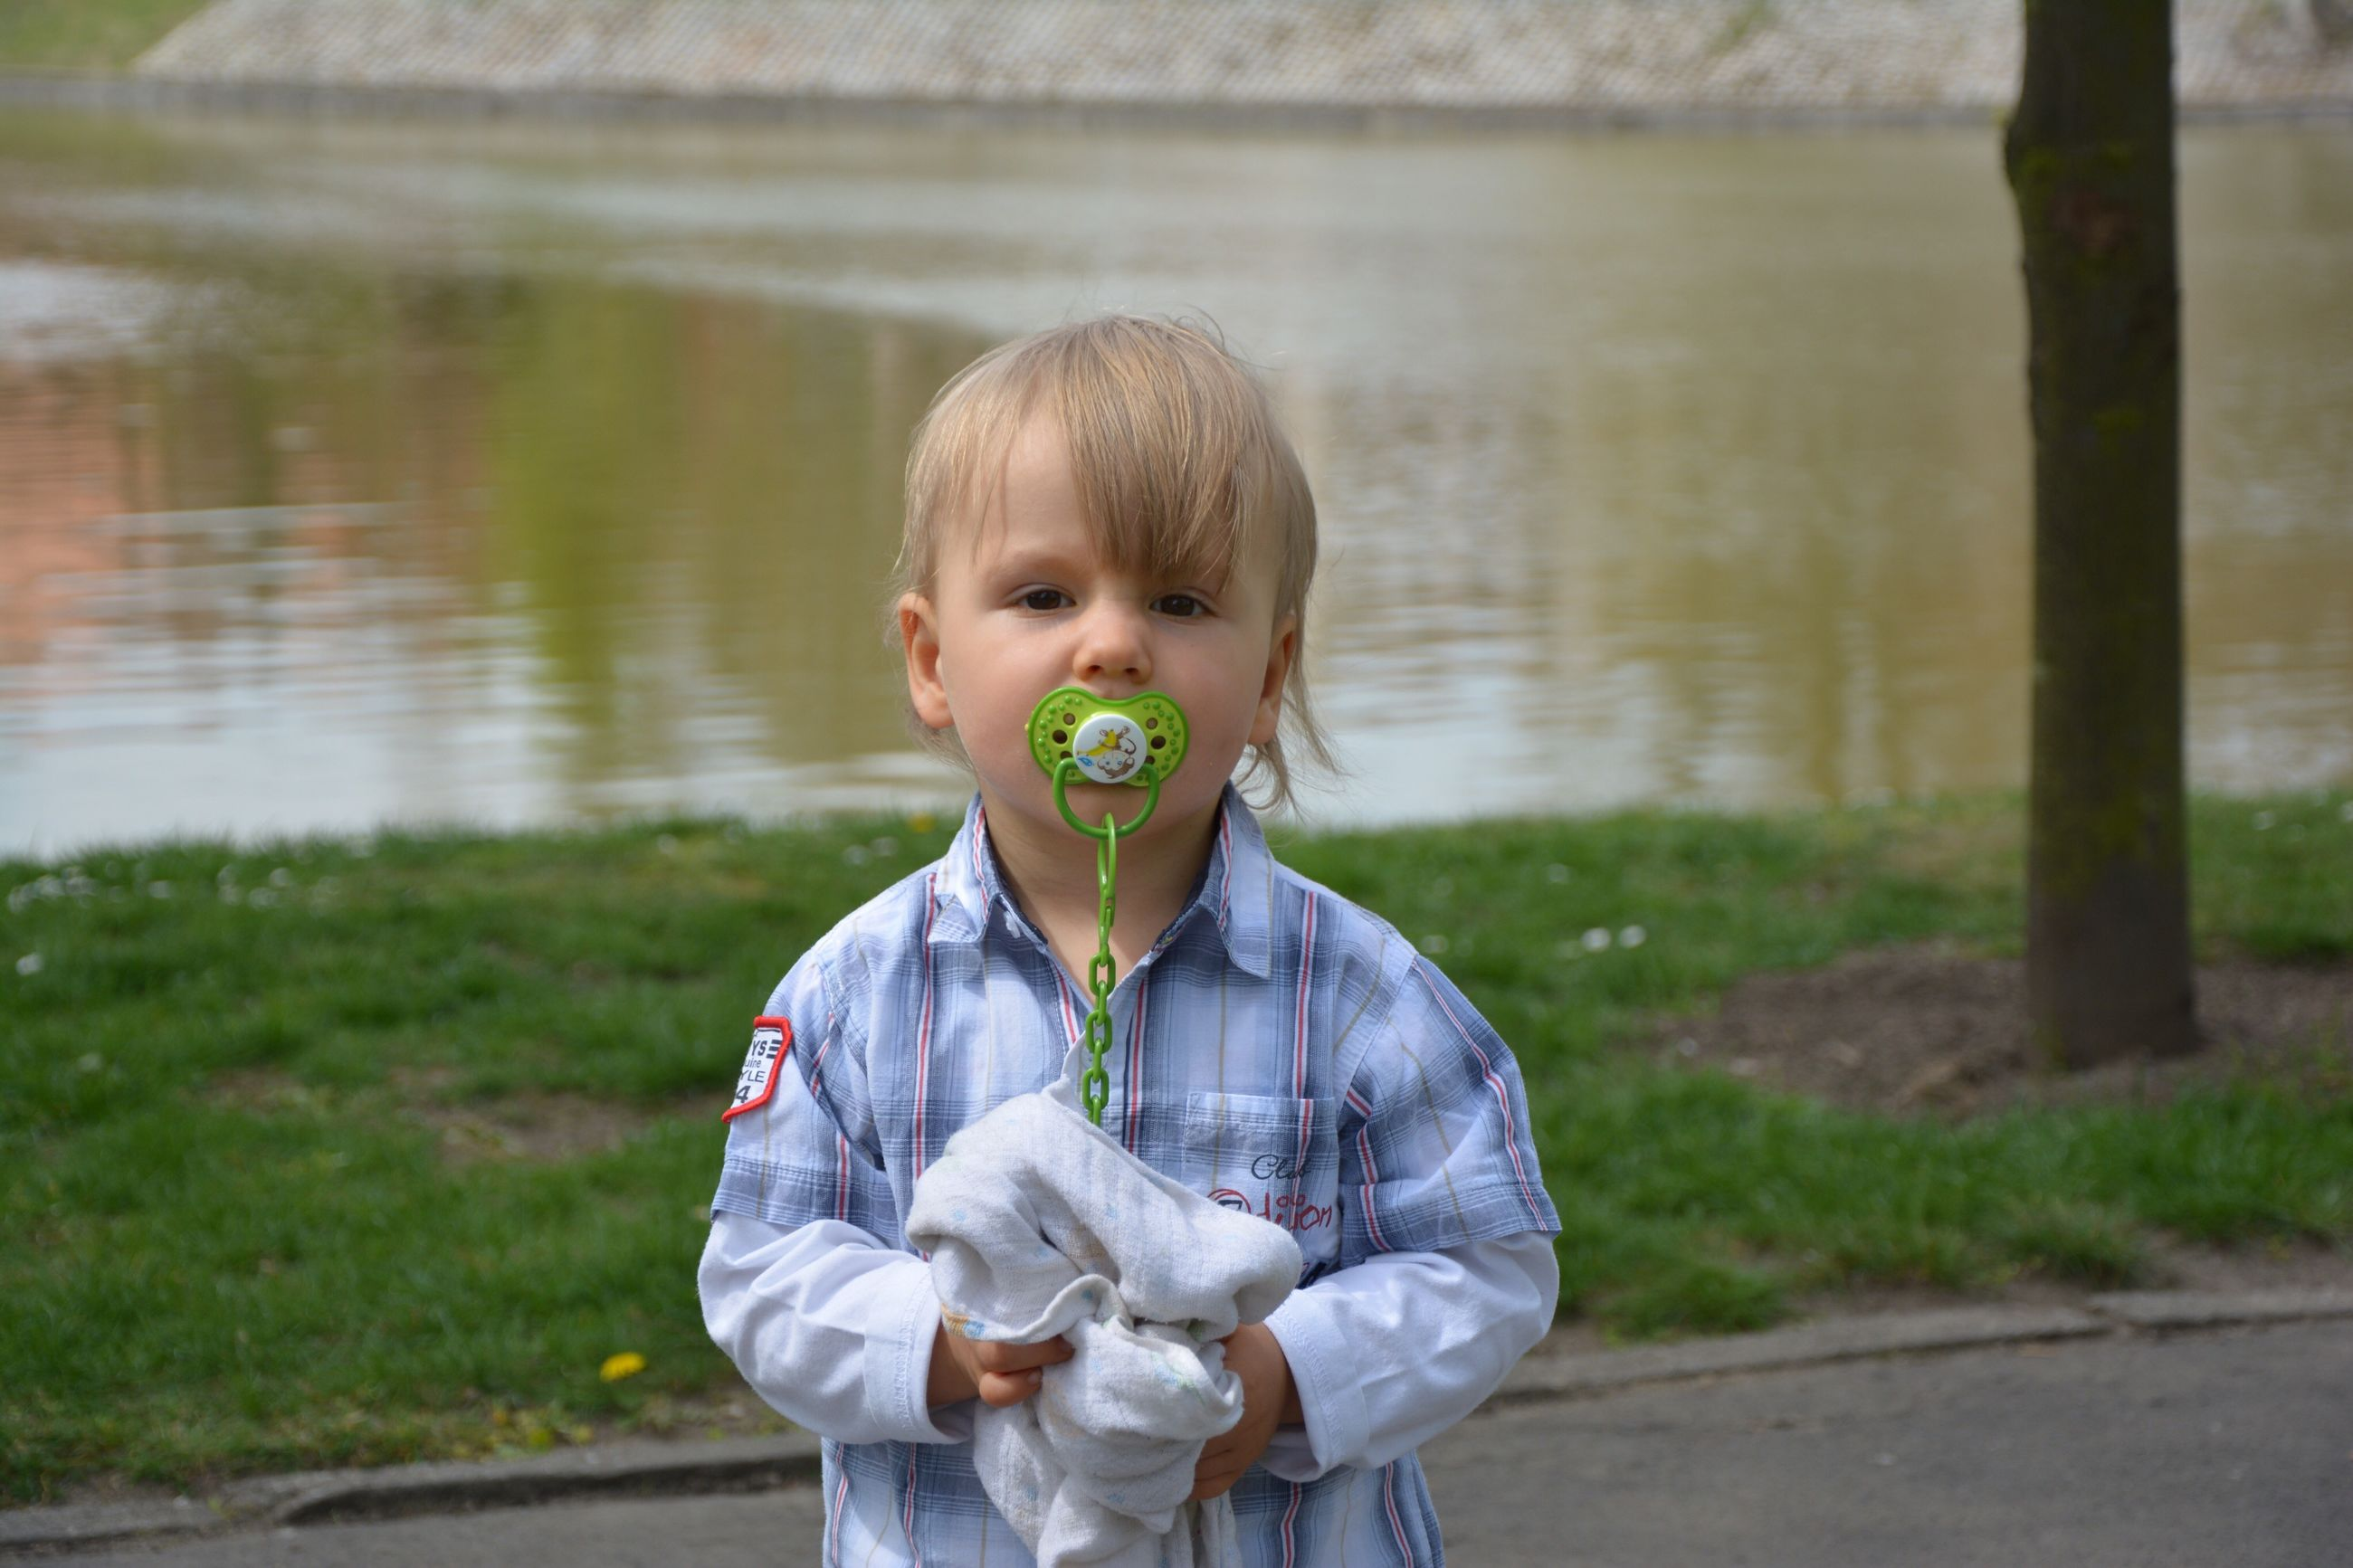 water, childhood, reflection, lake, child, one person, nature, grass, outdoors, day, baby, people